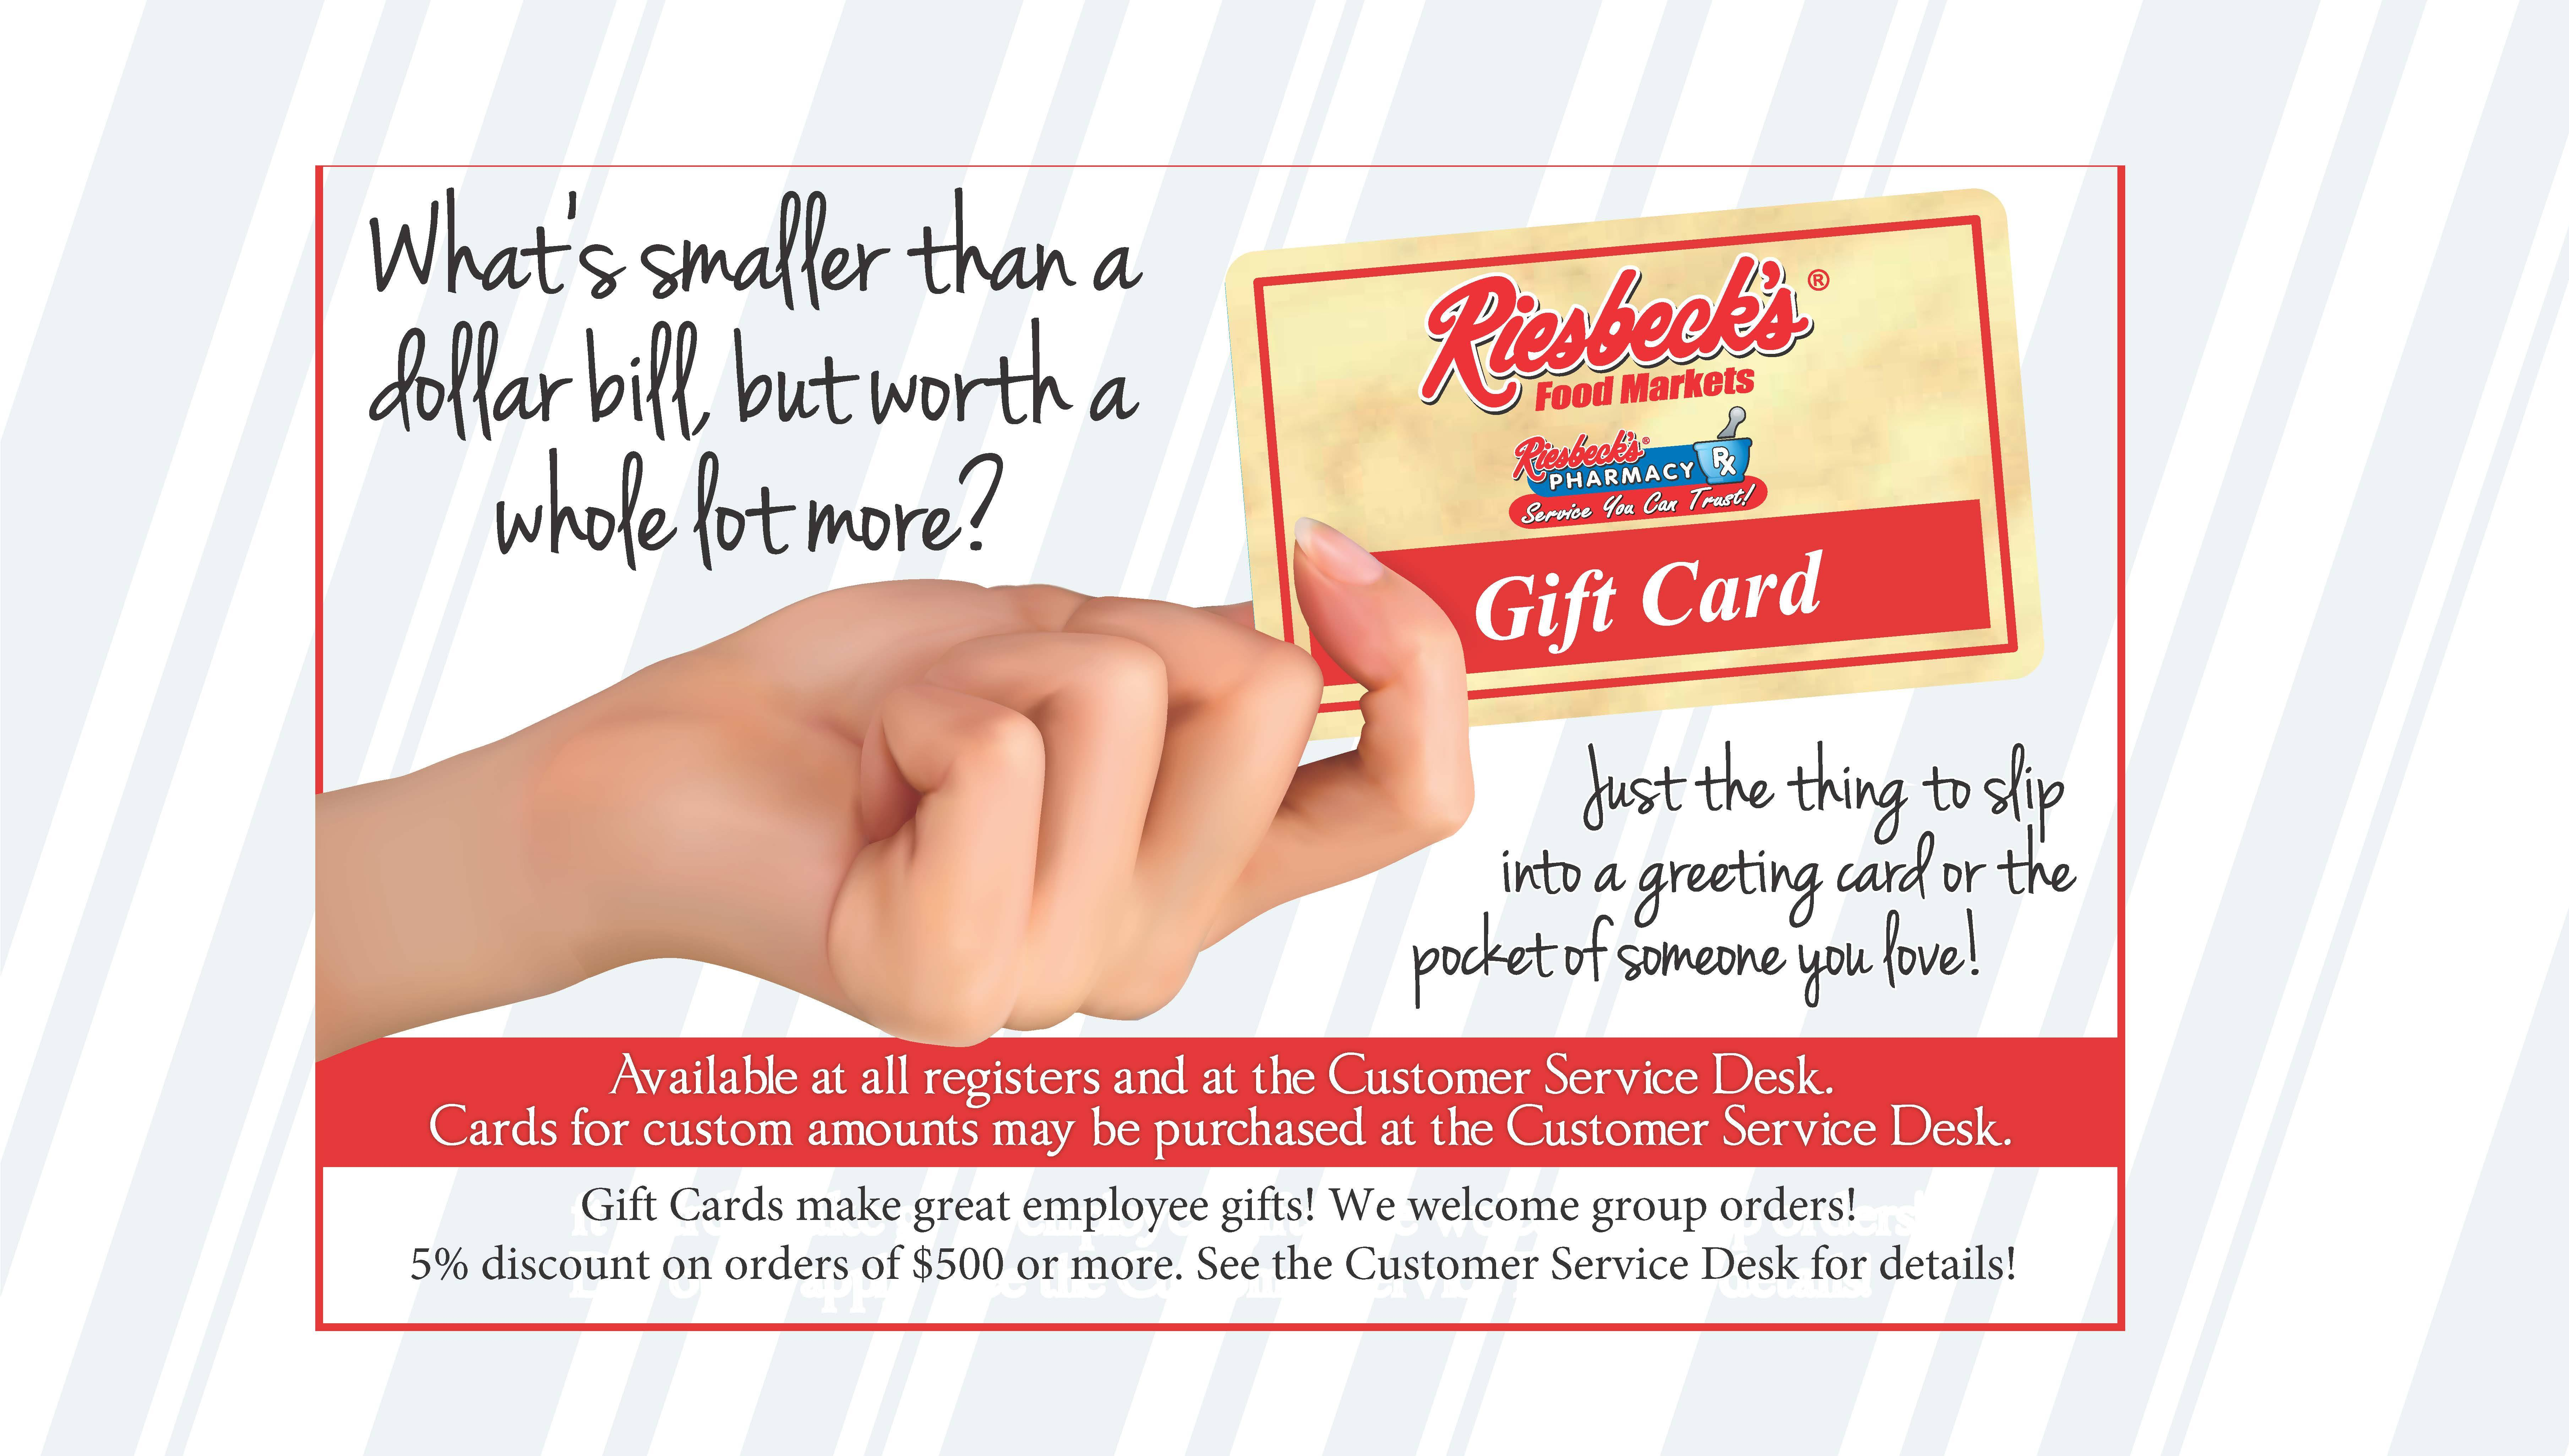 Riesbeck's Gift Cards Available